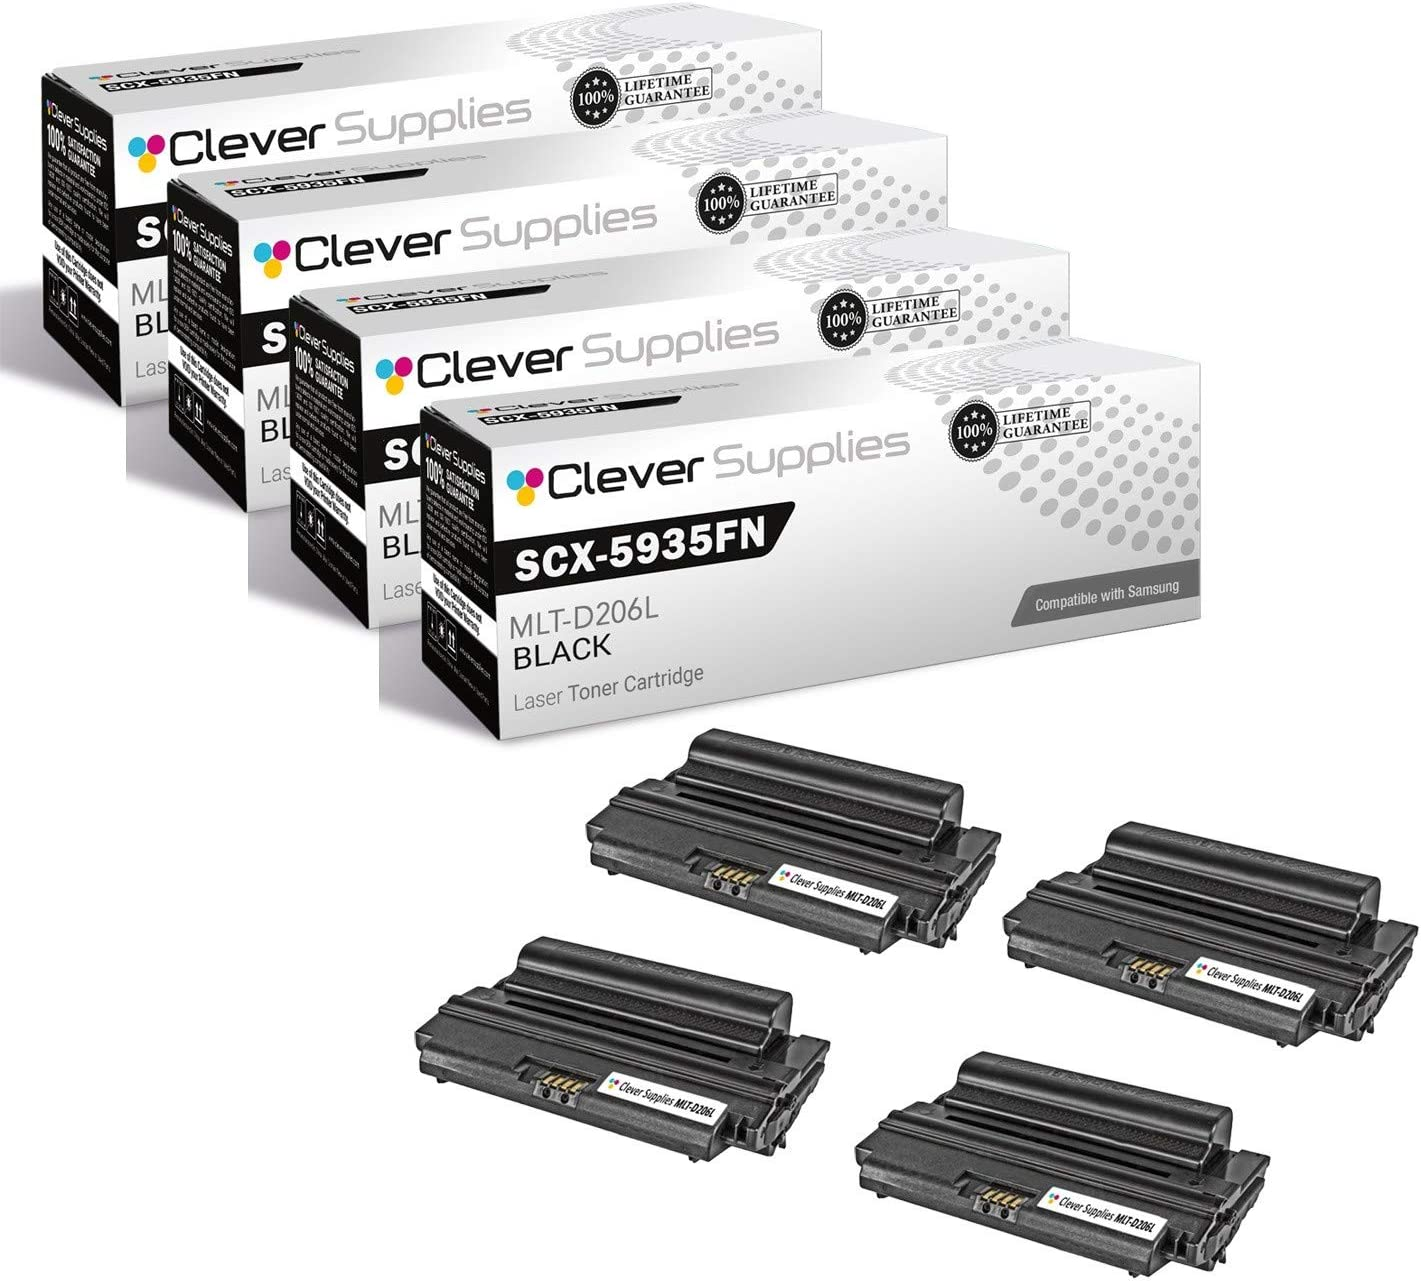 famous CS Compatible Toner Cartridge Samsung Max 64% OFF for Replacement SCX-5935FN